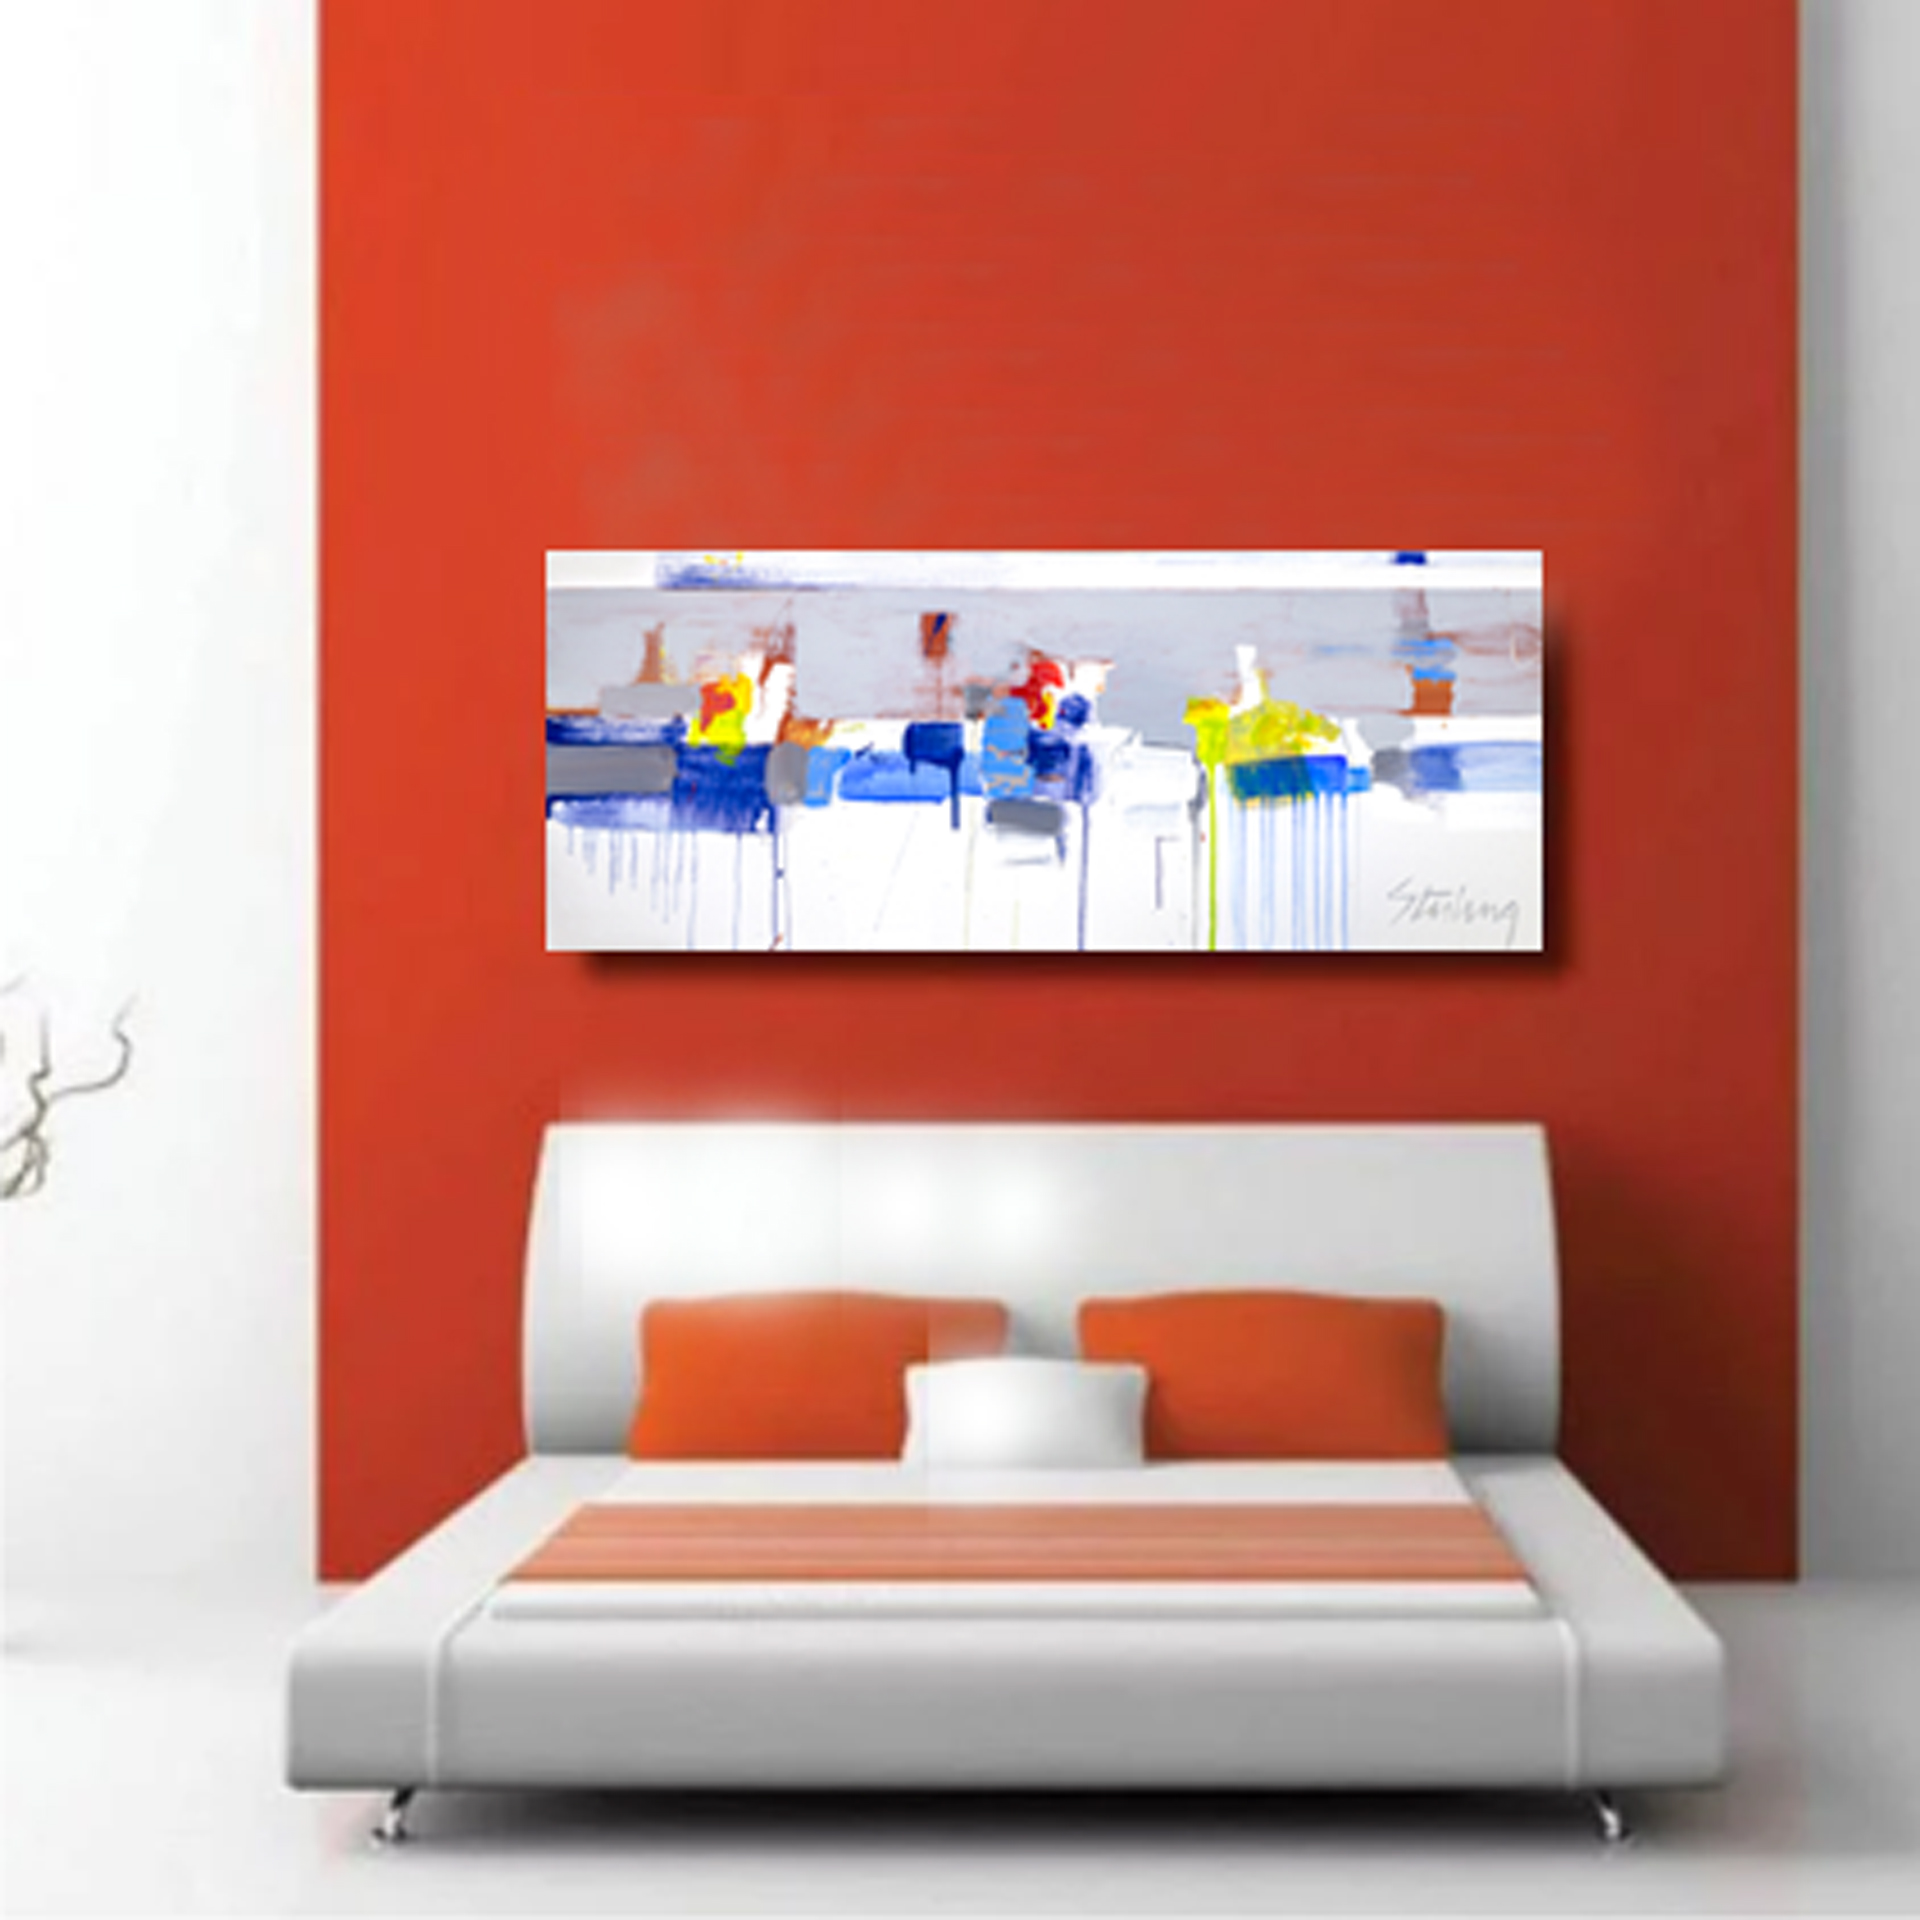 SWELL 24x50 giclee on canvas  $800